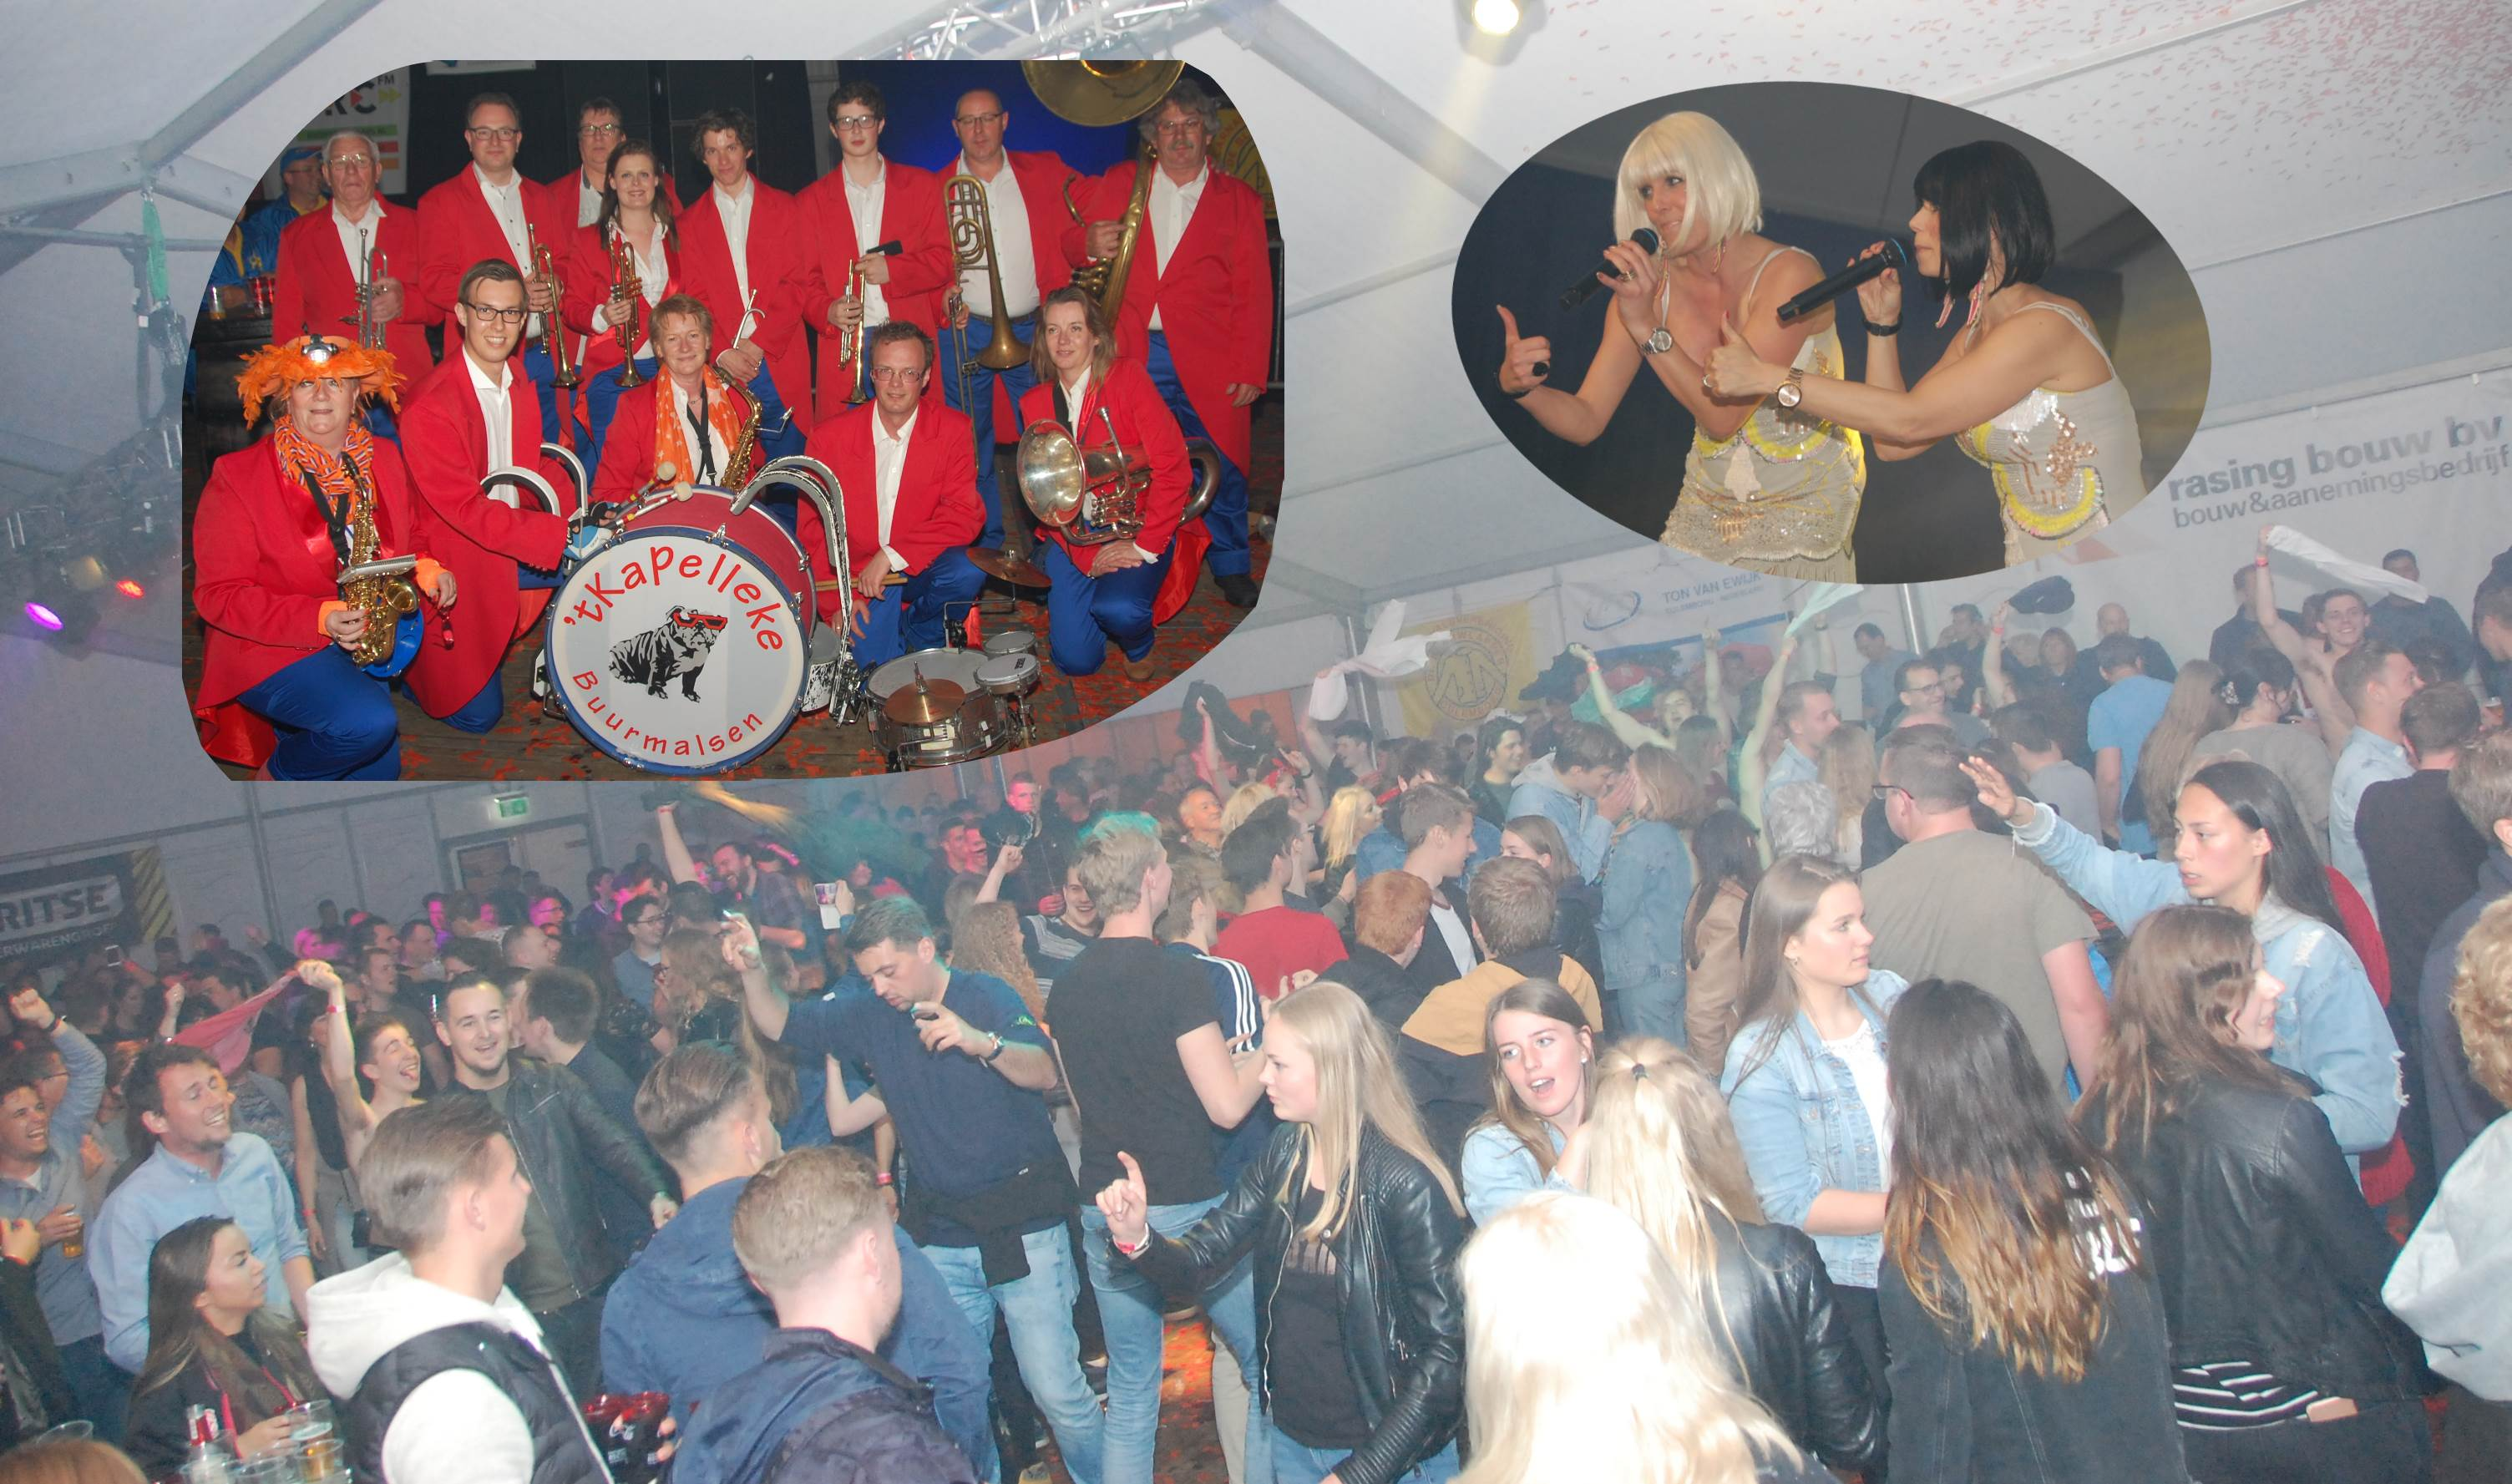 Collage: Blaaskapellenfestival Culemborg 700